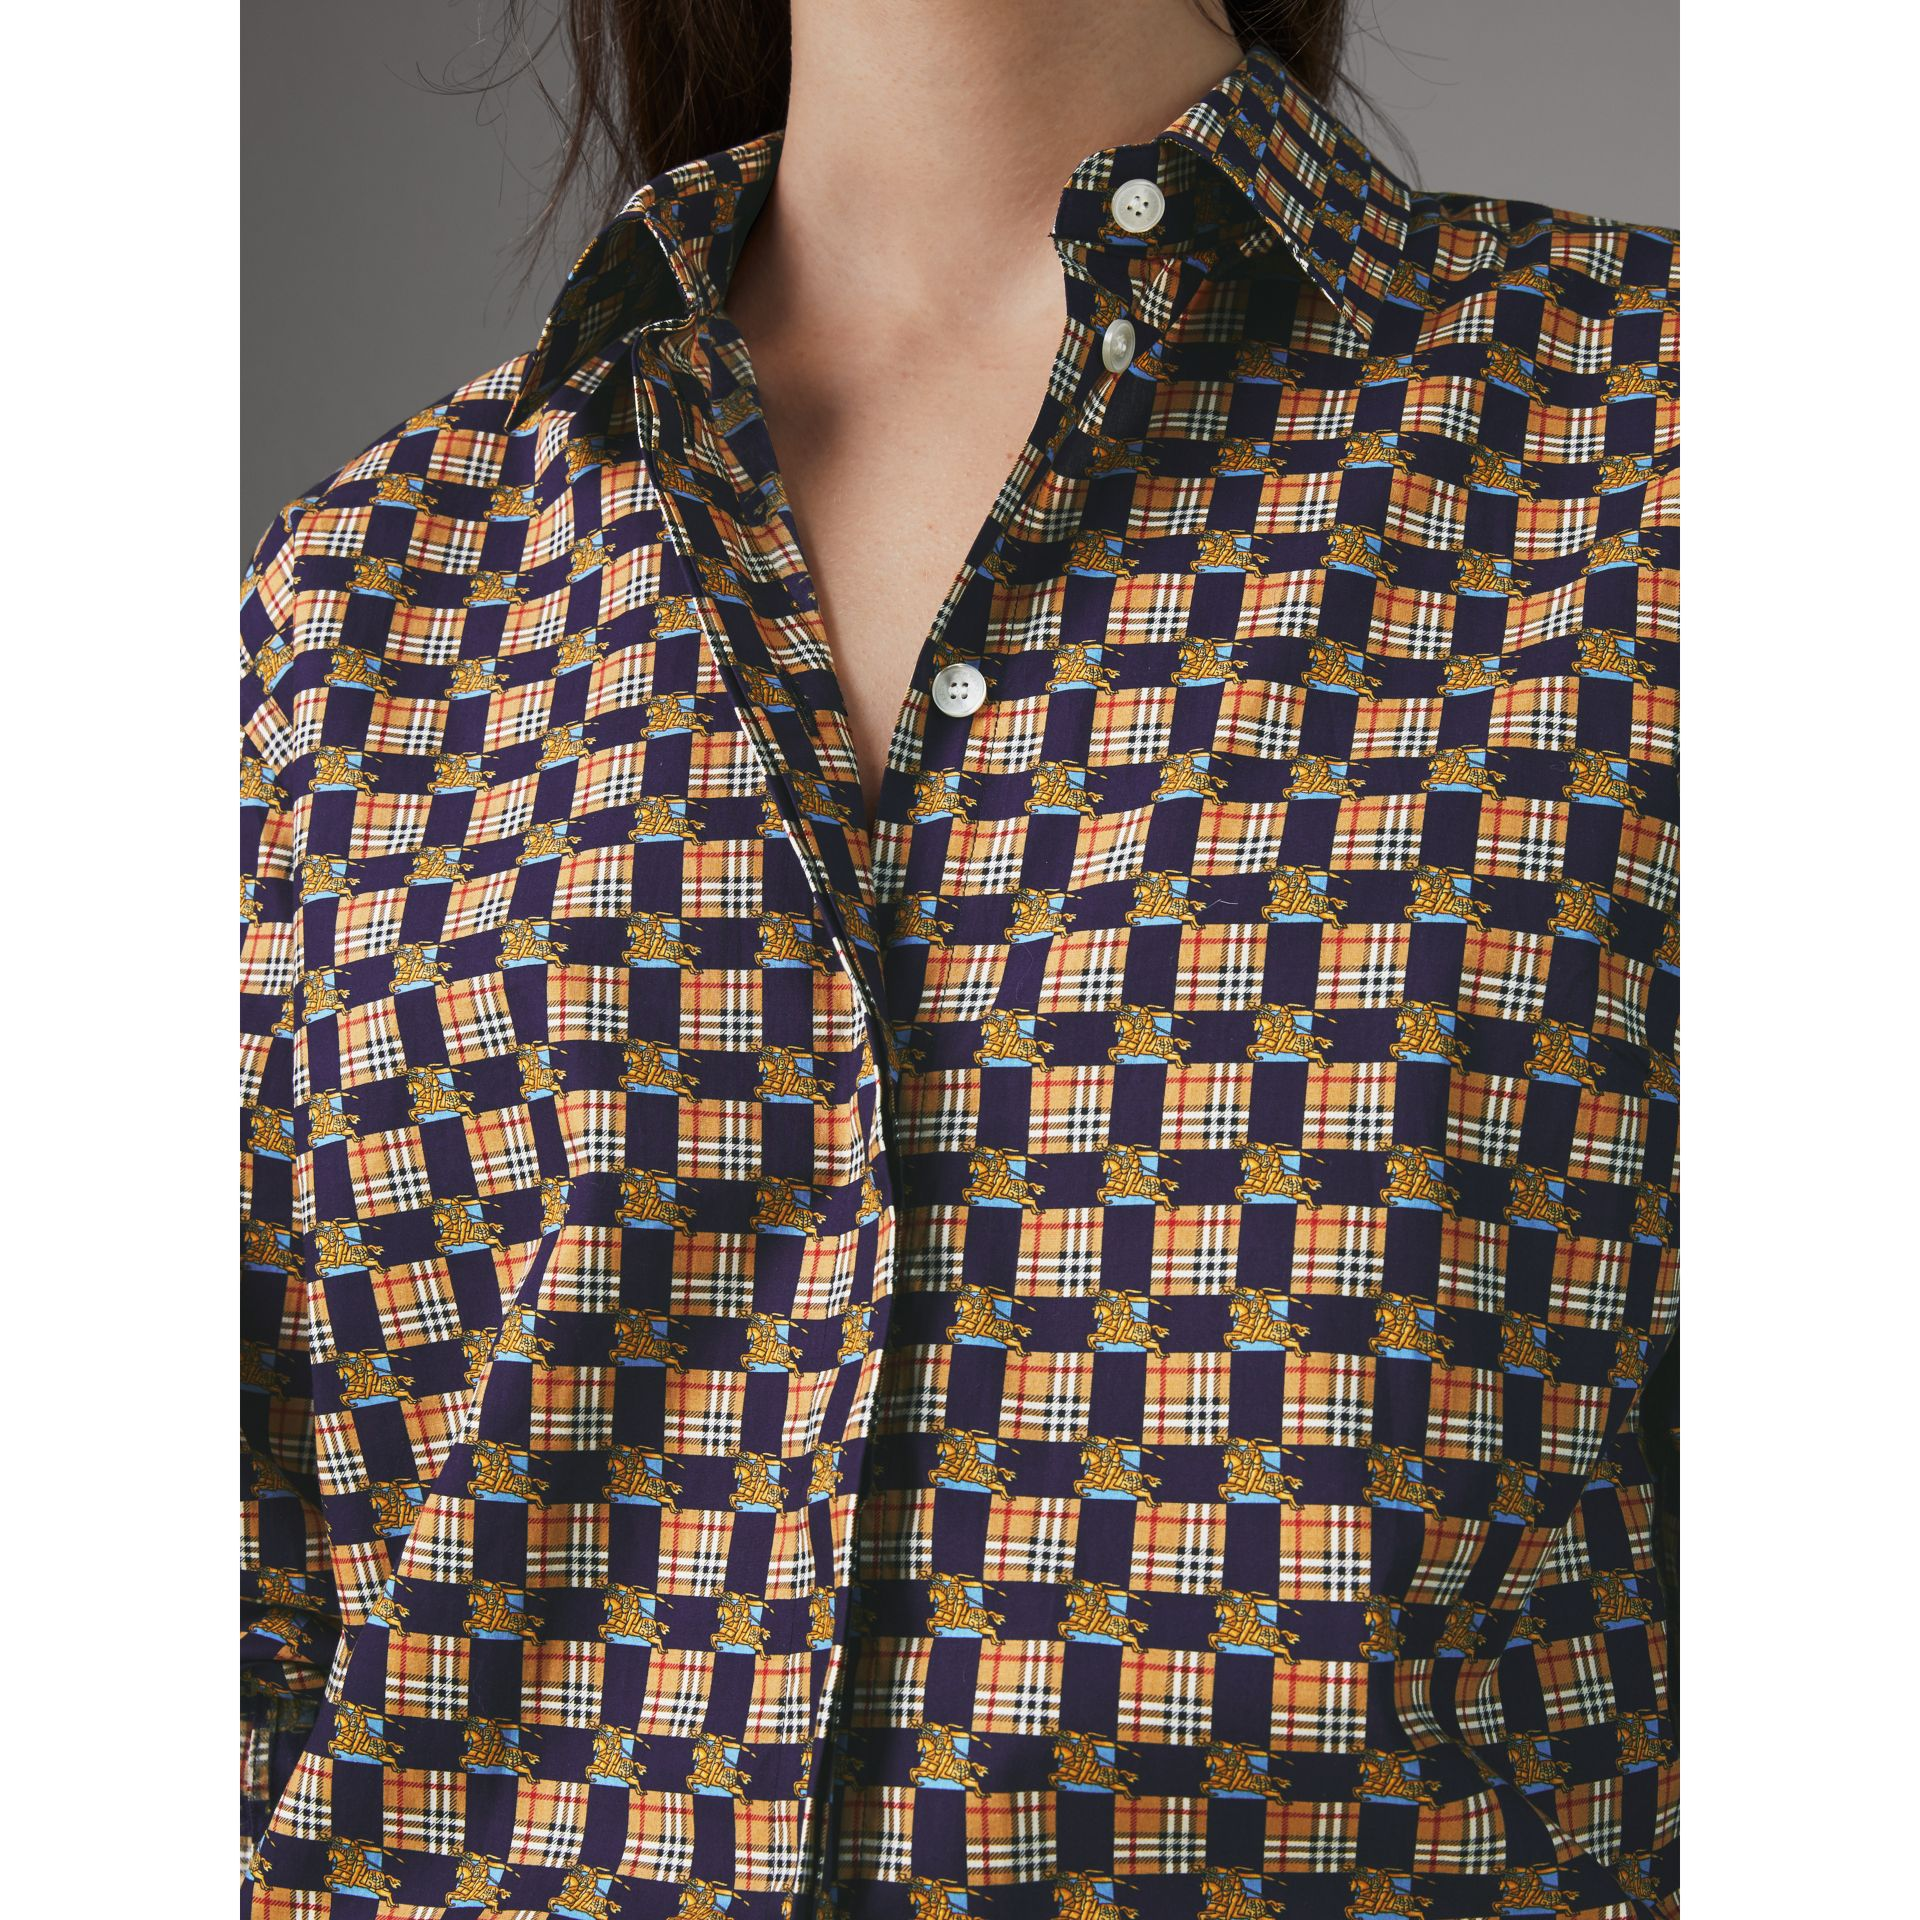 Tiled Archive Print Cotton Shirt in Navy - Women | Burberry United Kingdom - gallery image 1